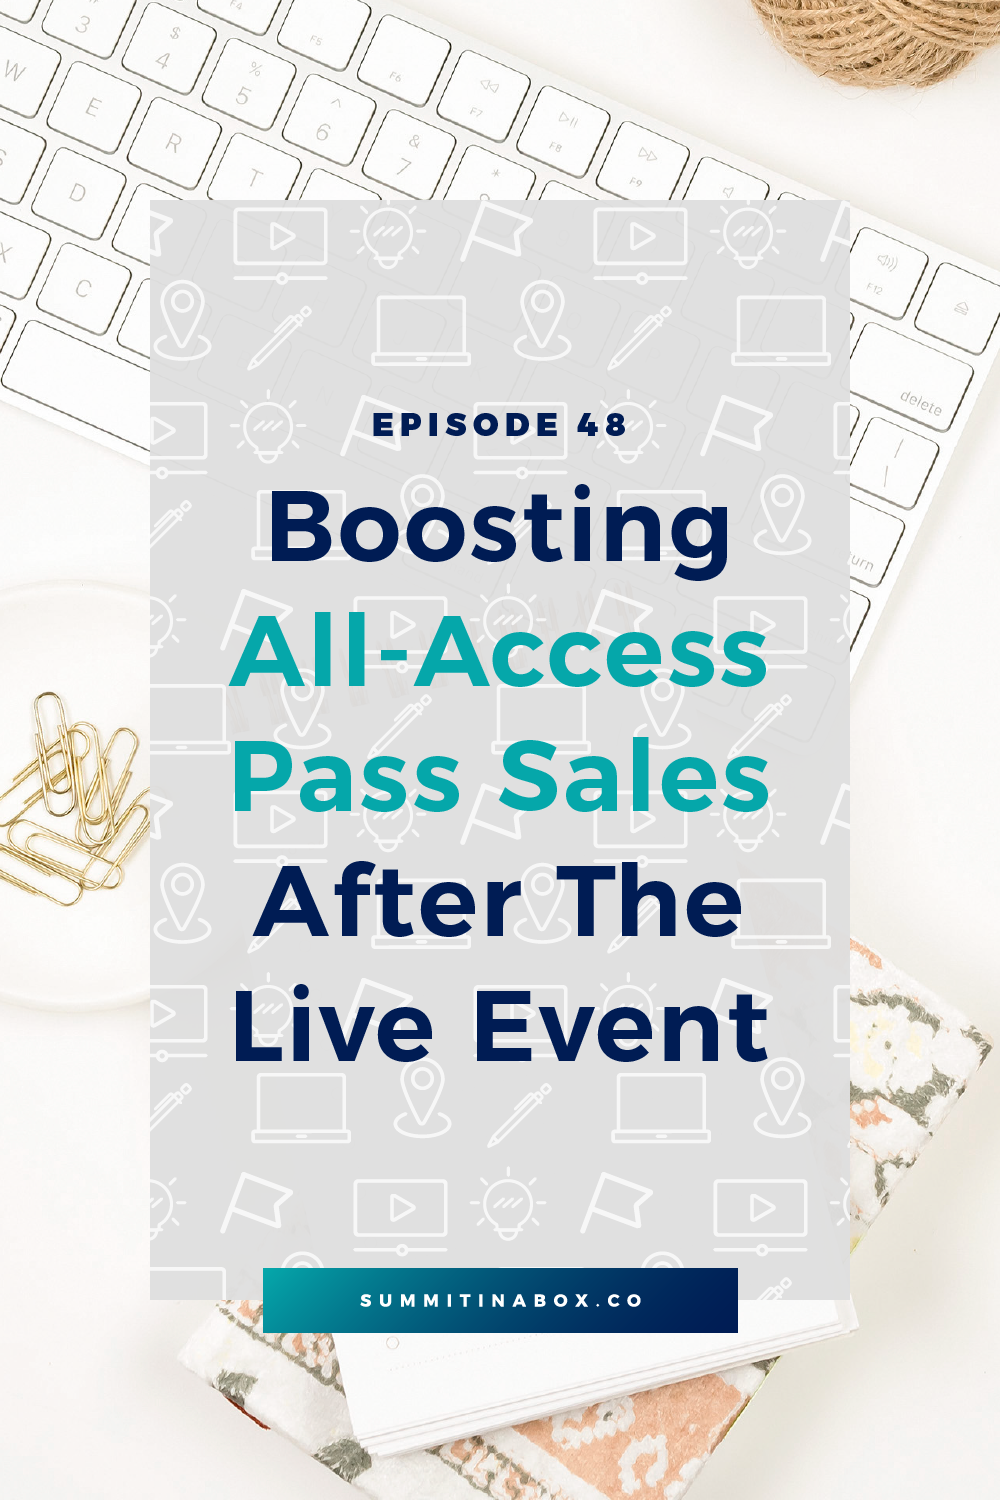 Your summit presentations are over, but that doesn't mean sales have to stop! Here's how to increase all-access pass sales once your virtual summit is over.